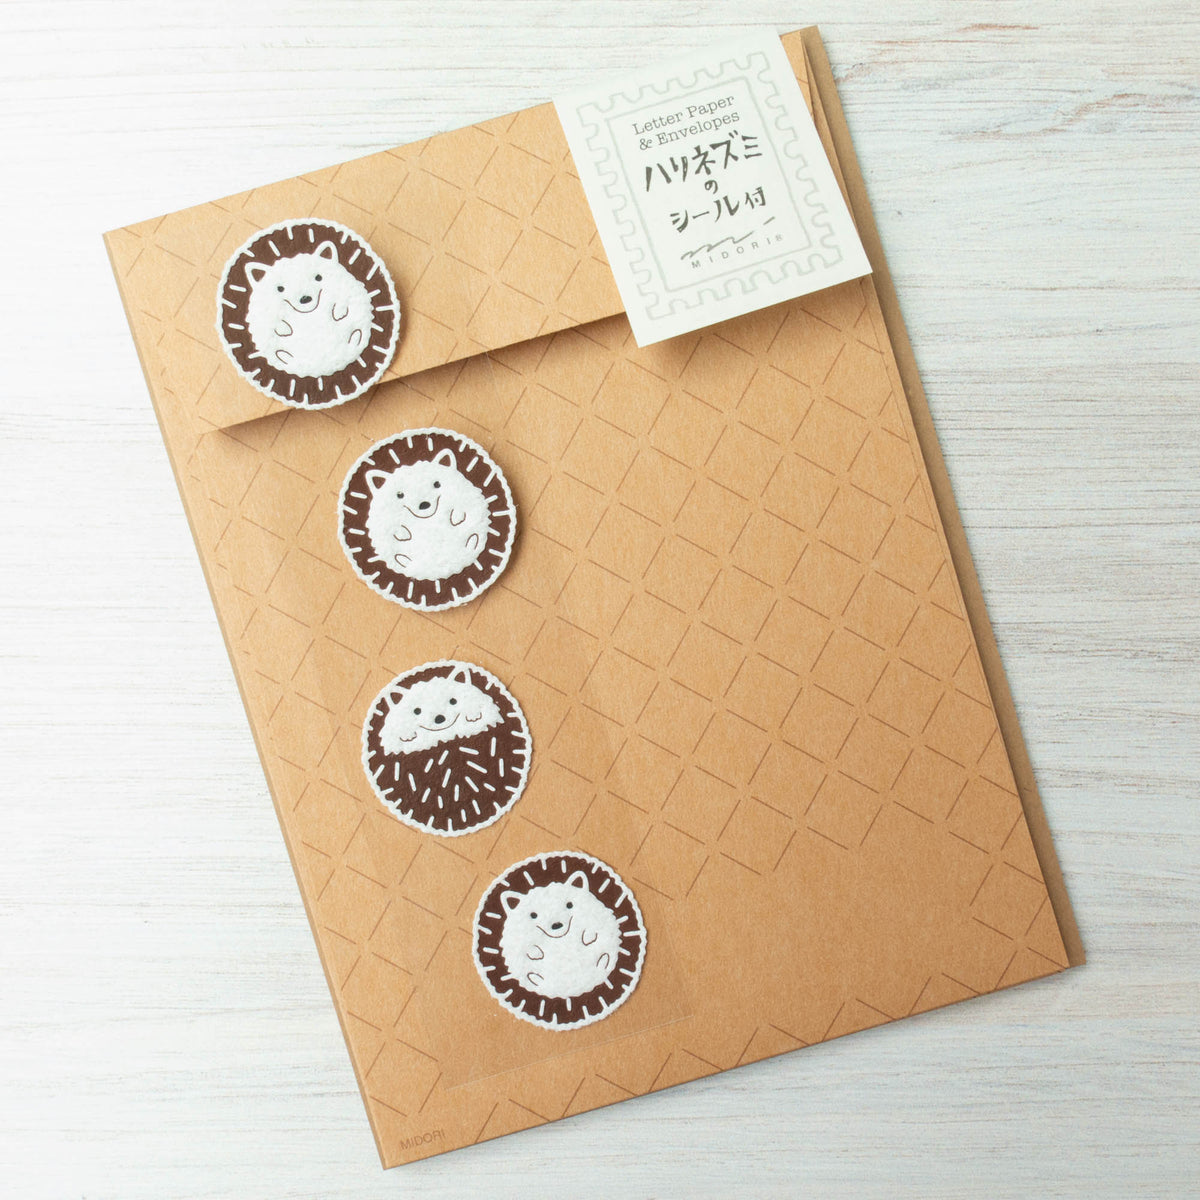 Japanese Letter Writing Set - Hedgehog